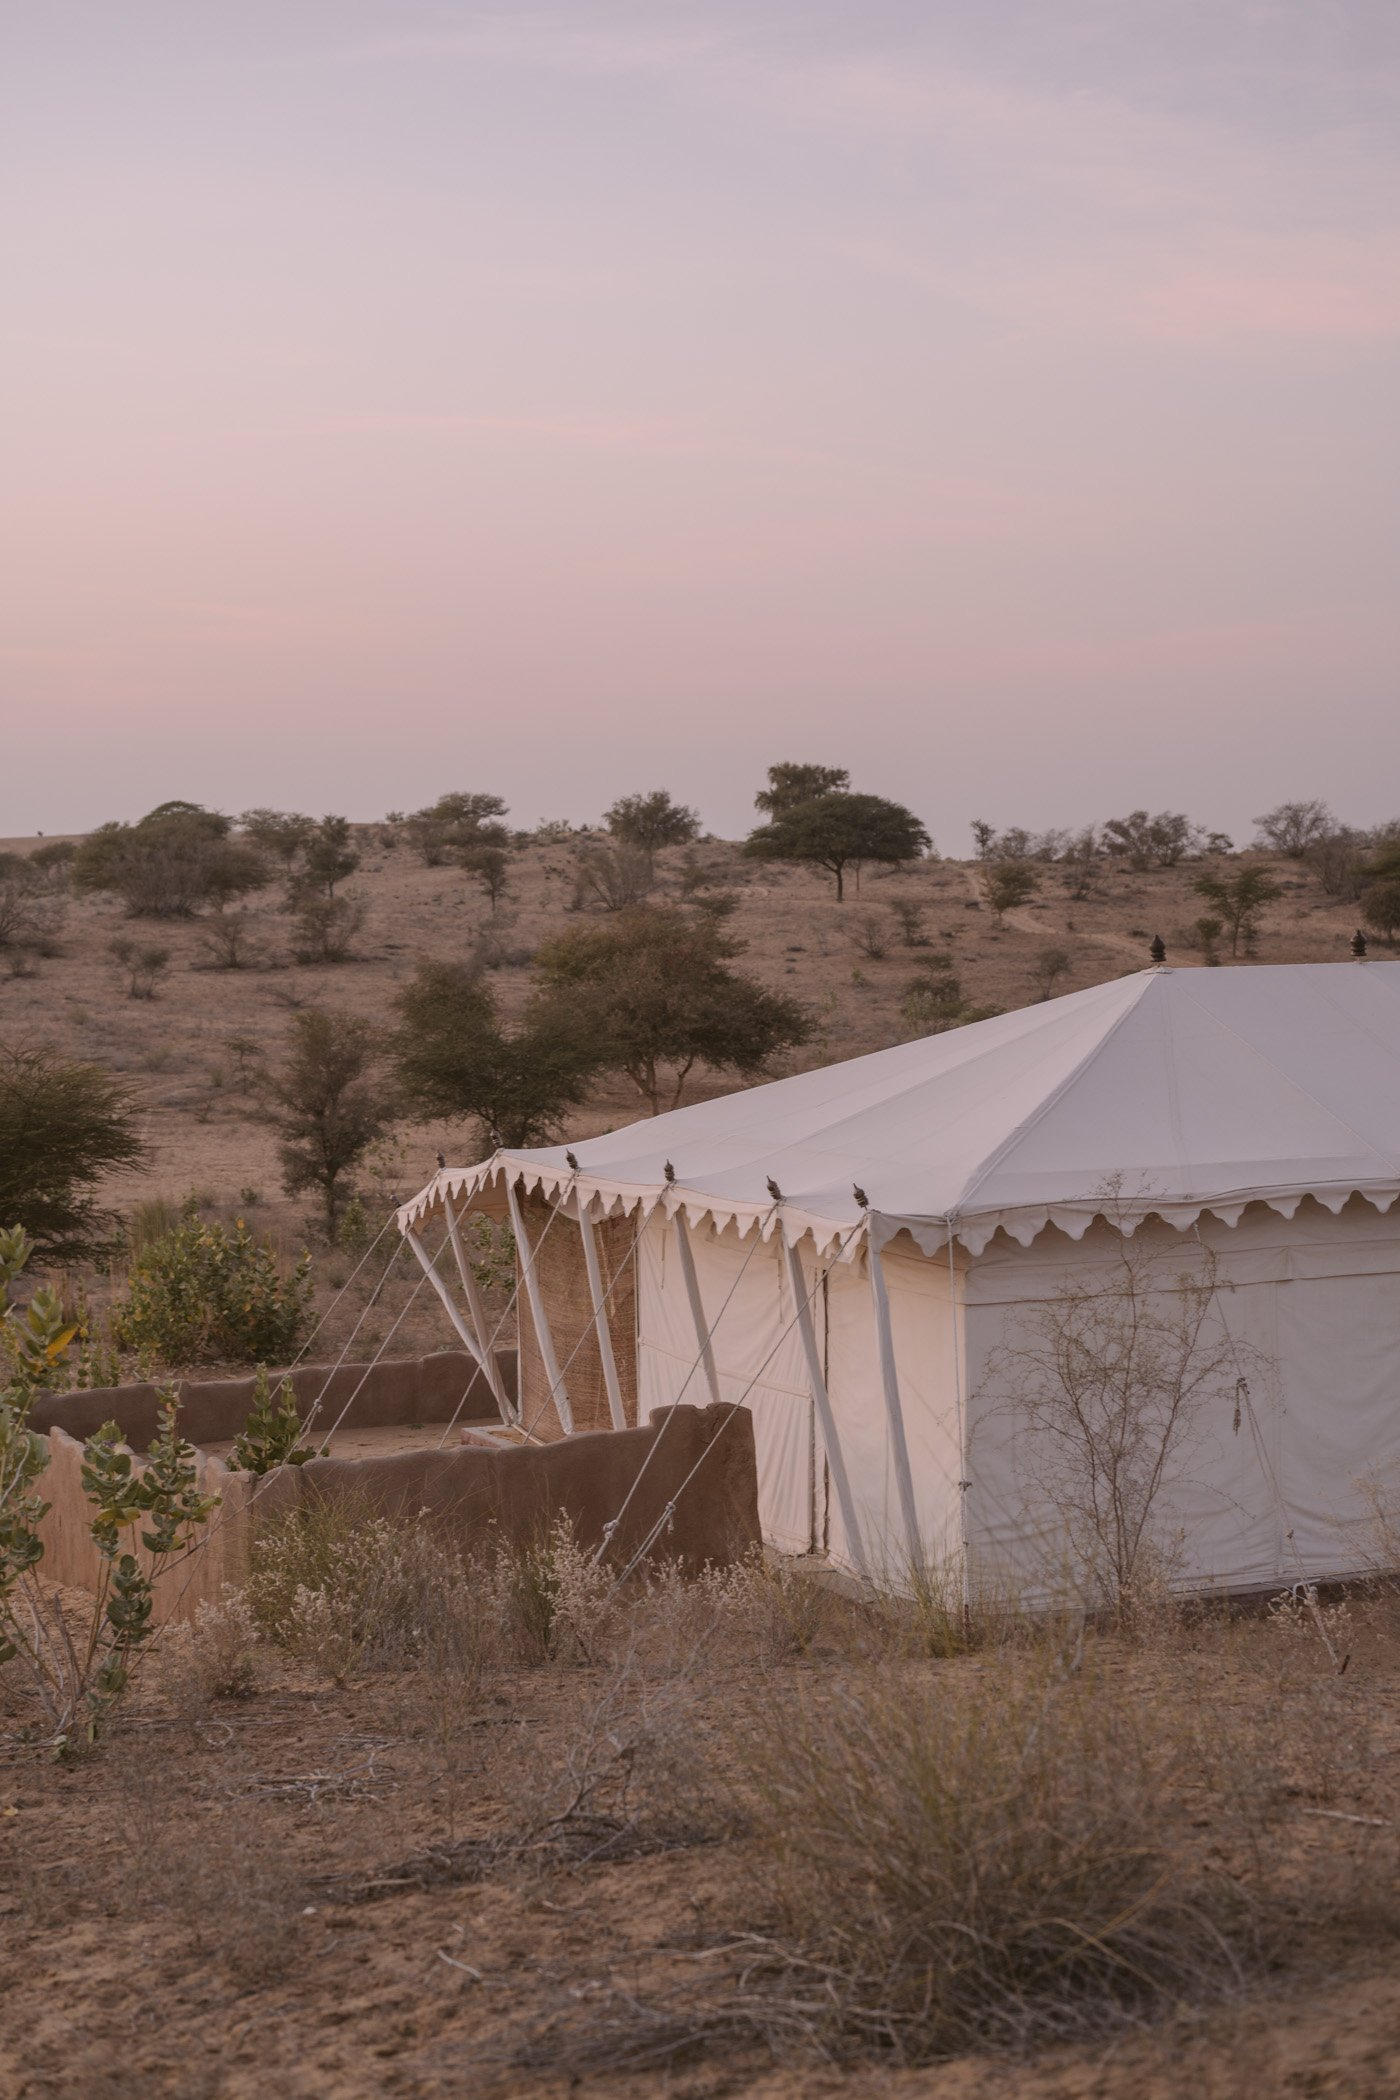 Desert camp in Rajasthan